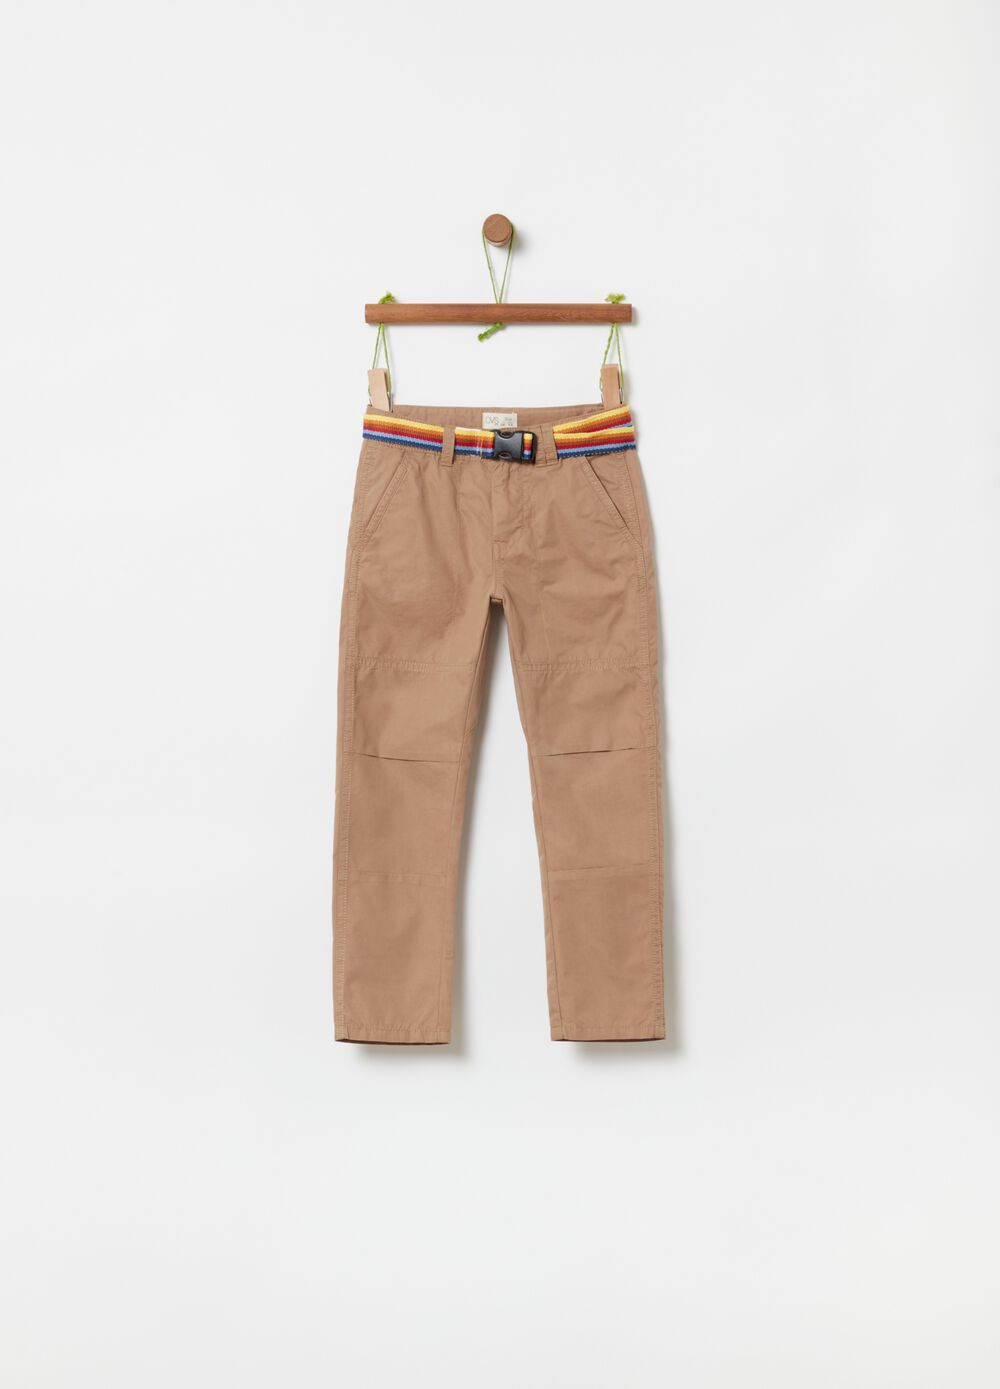 Trousers with pockets and belt